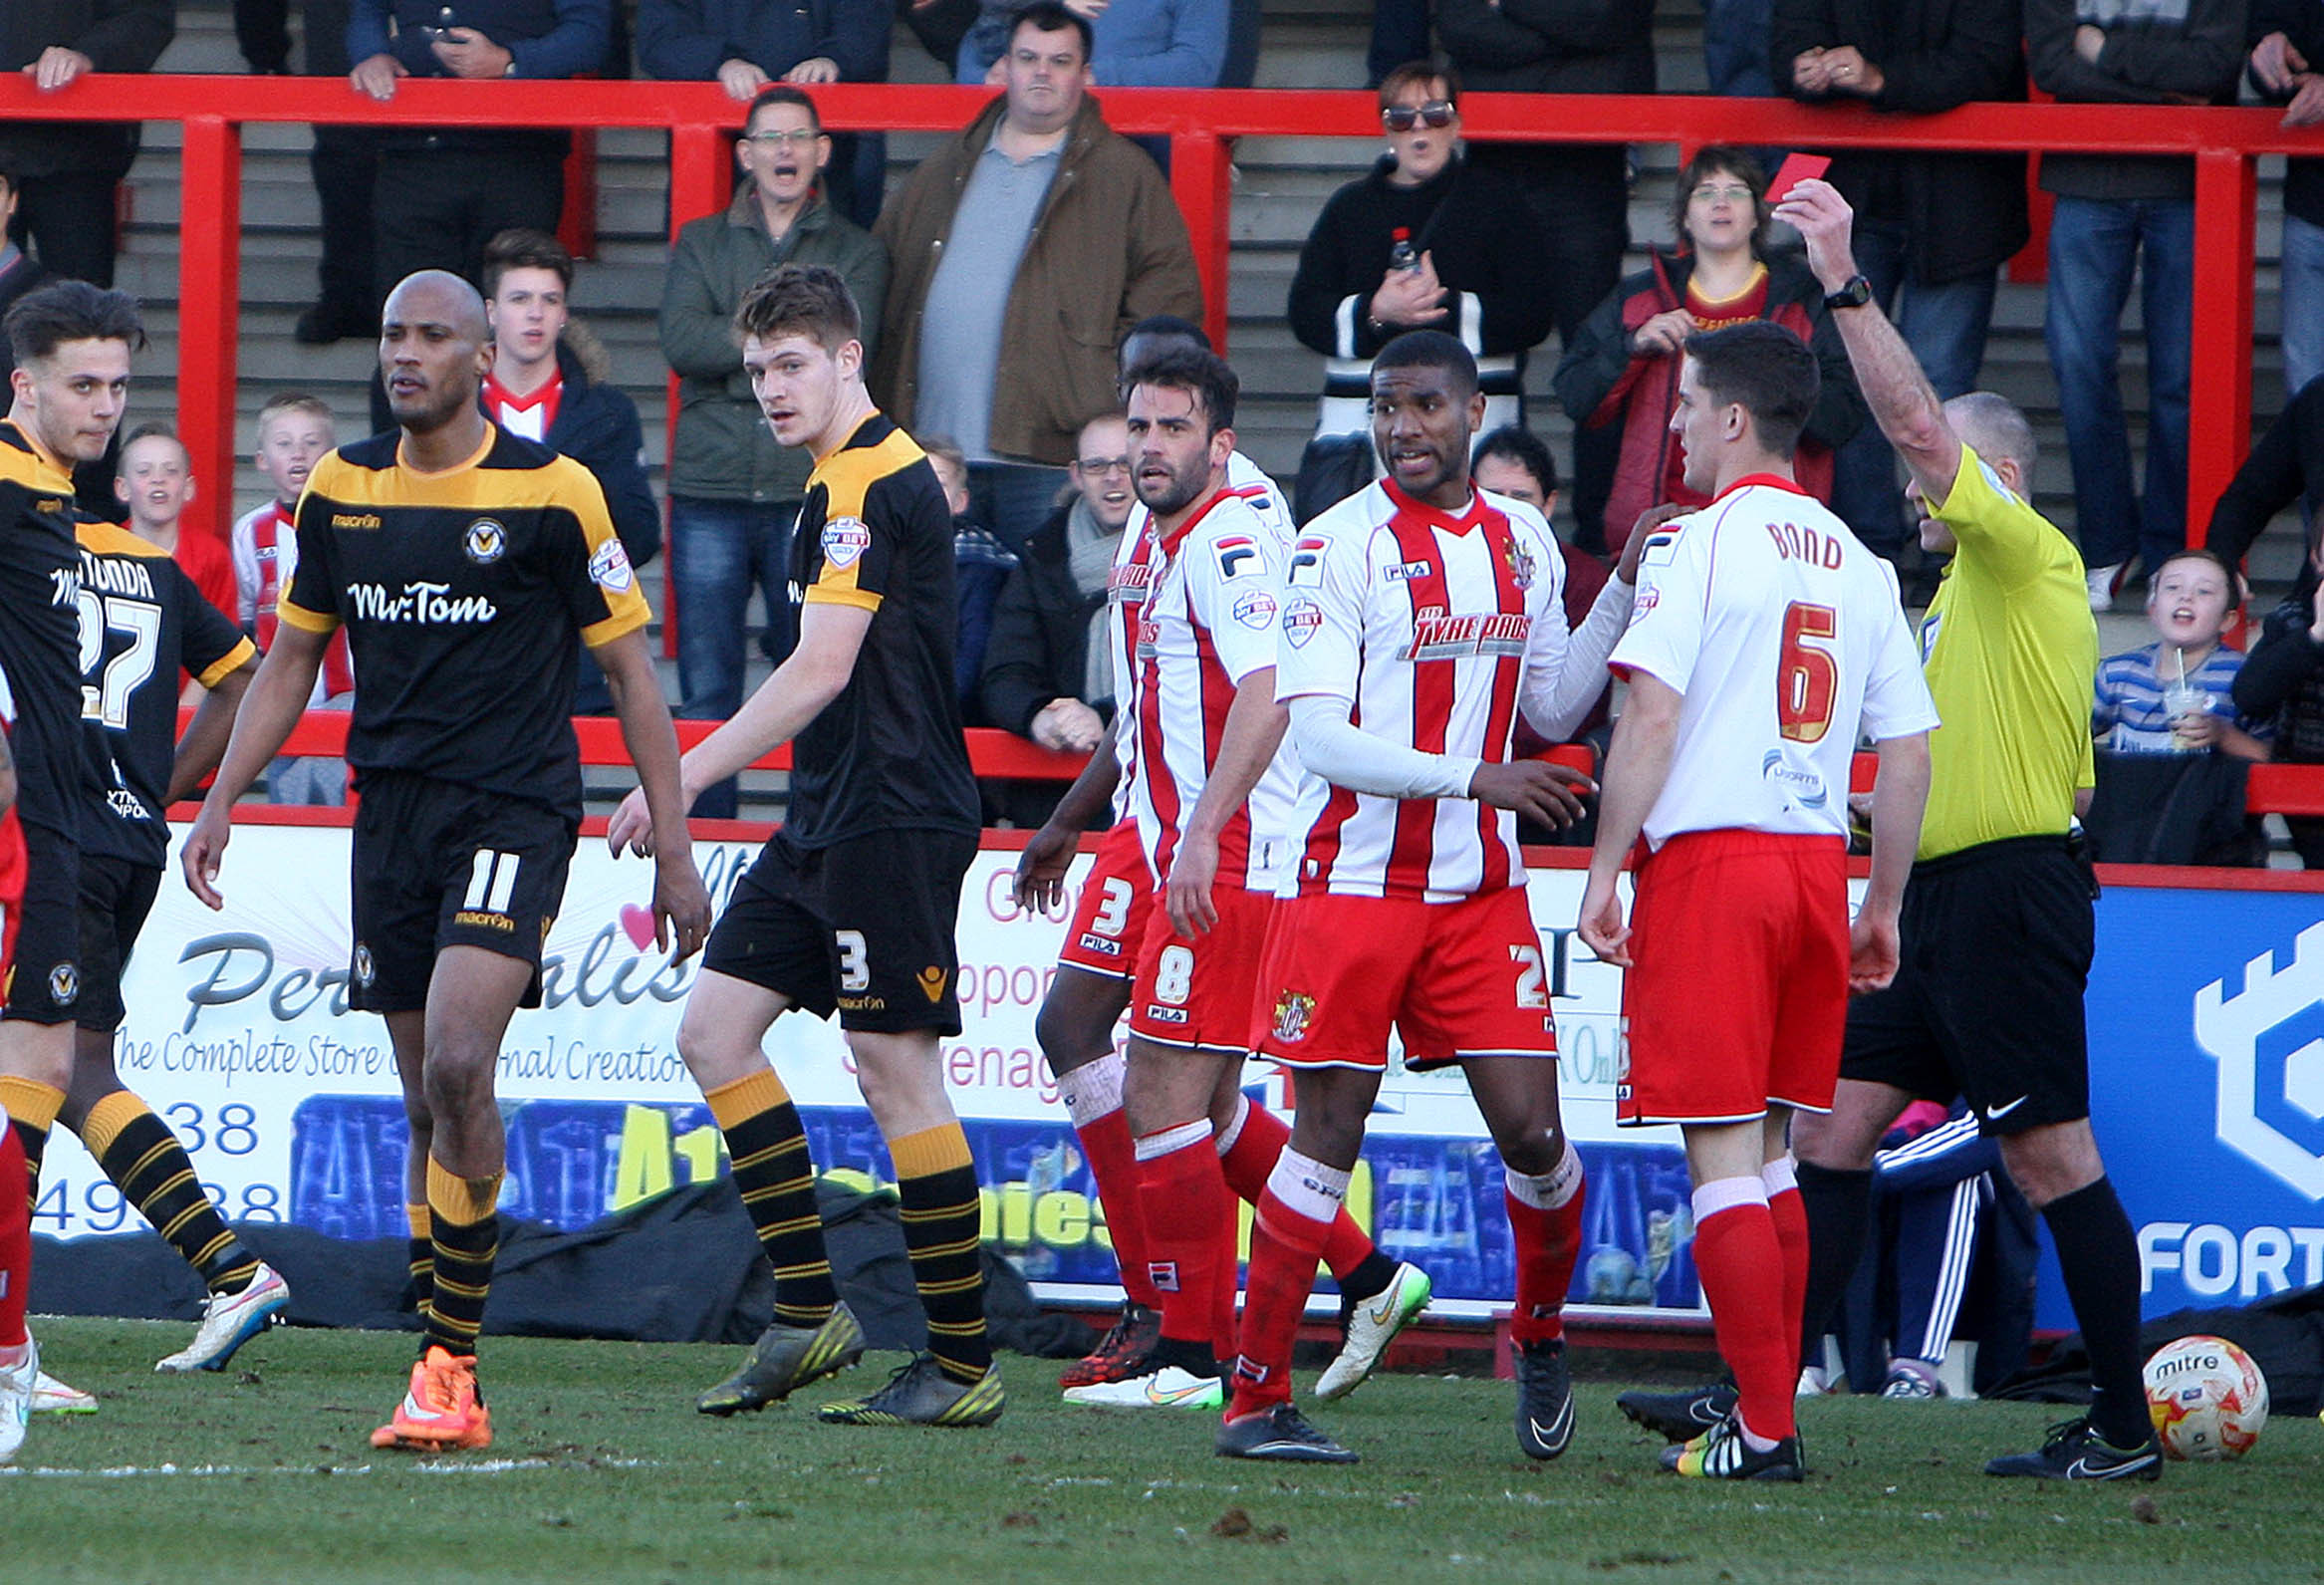 07.03.15 - Stevenage Borough v Newport County -  Sky Bet League 2 - Chris Zebroski of Newport is red carded. (20156493)